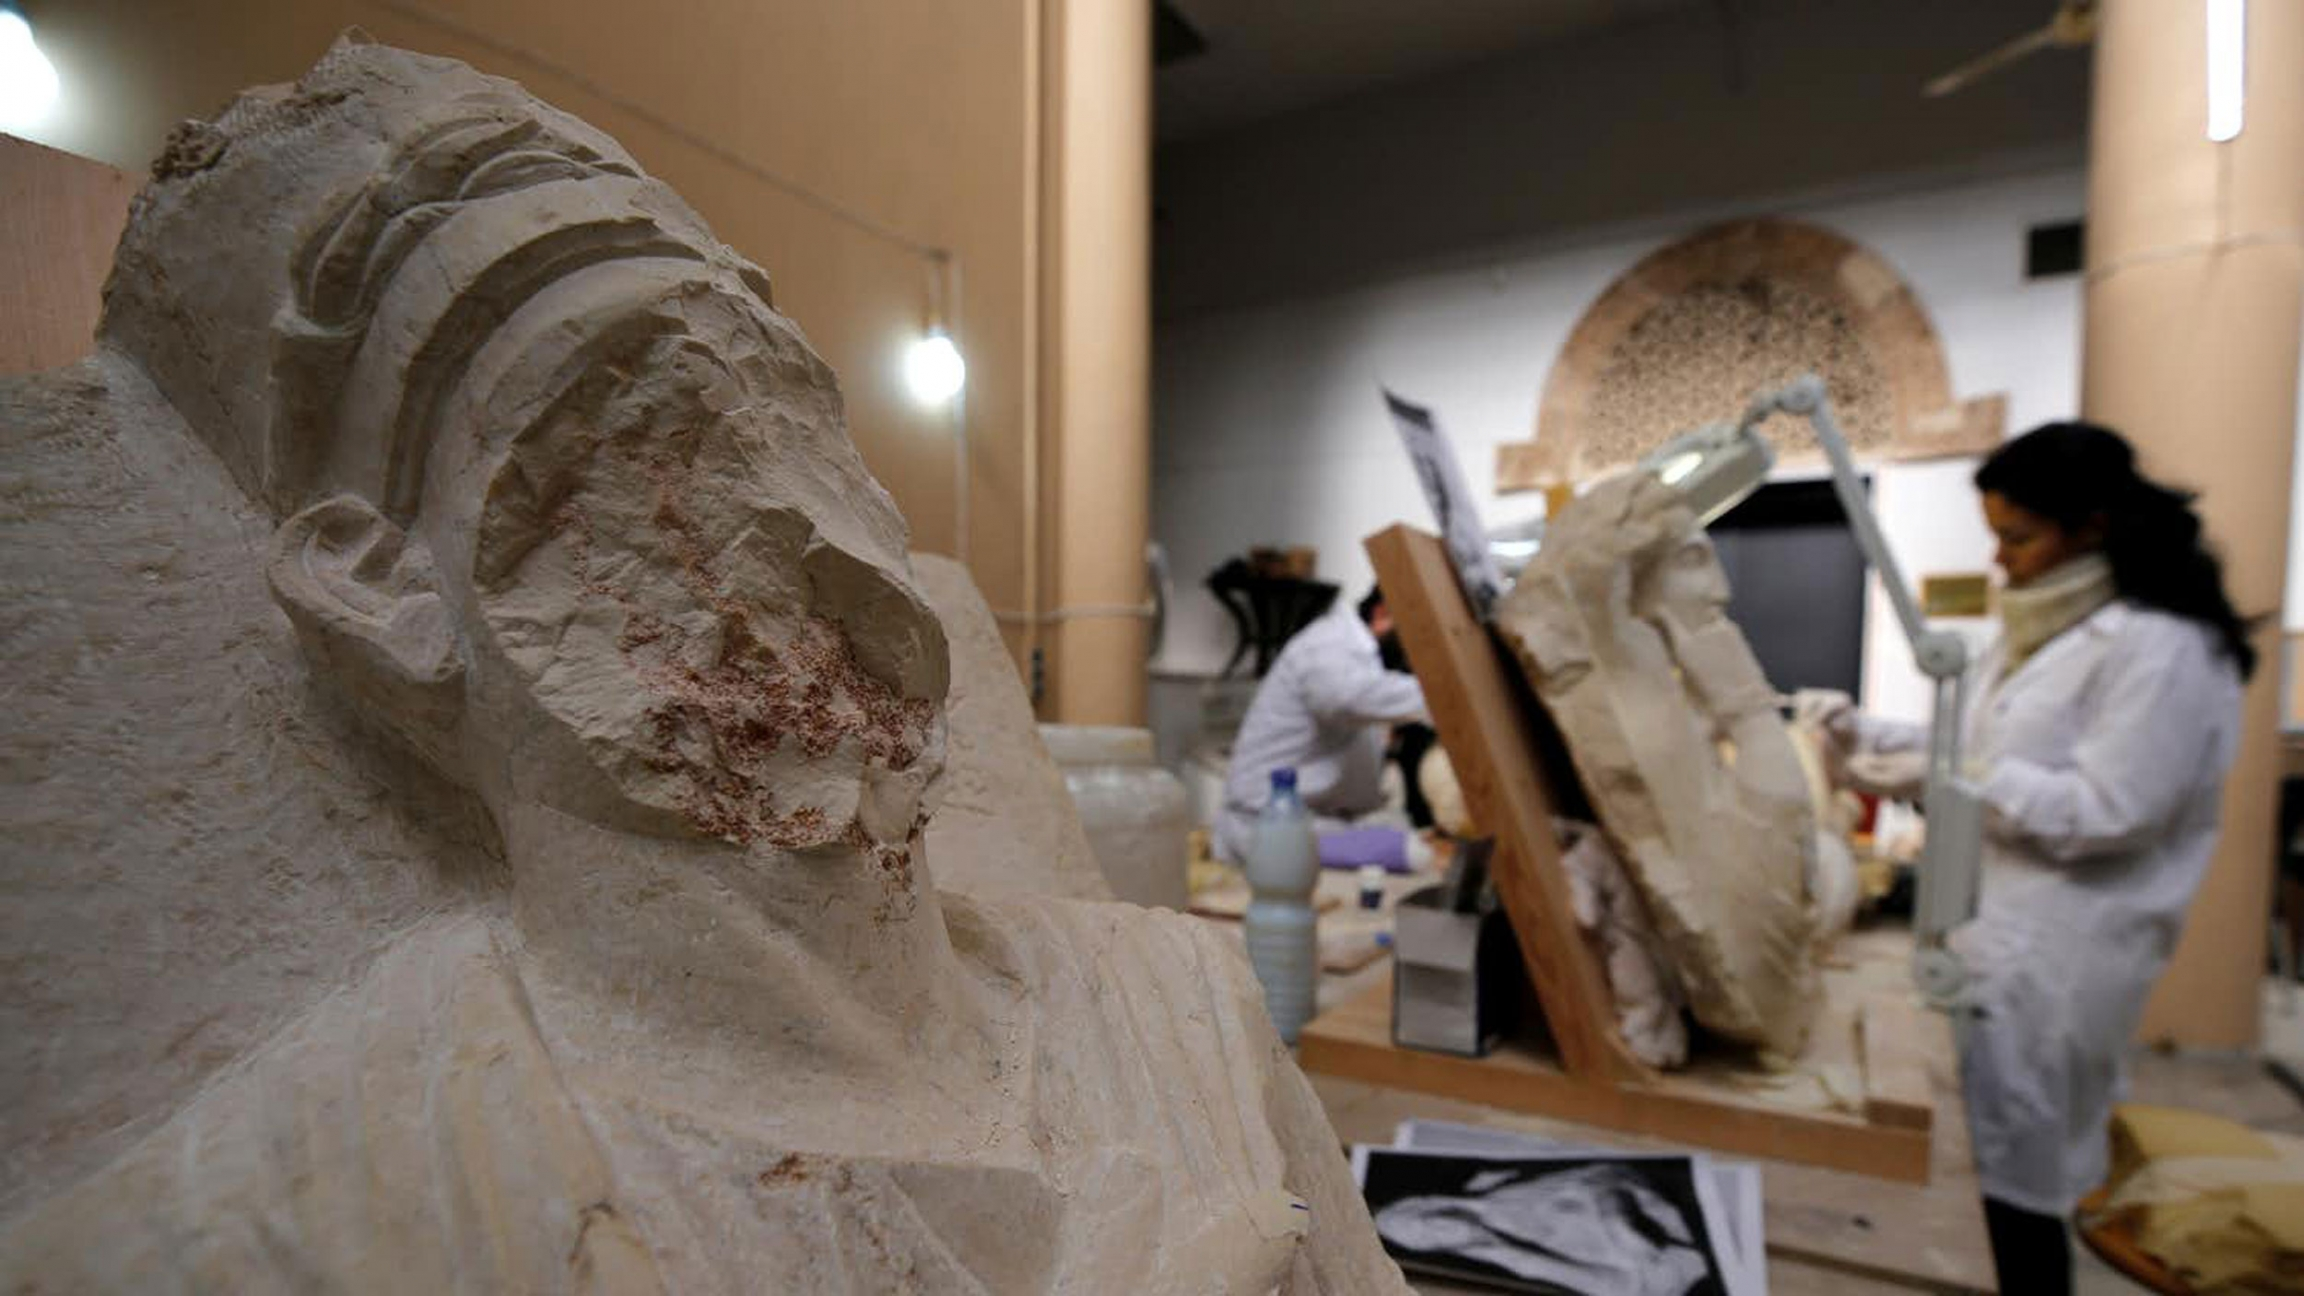 A woman works on damaged statues - one is missing part of its face - from Palmyra at Syria's National Museum of Damascus